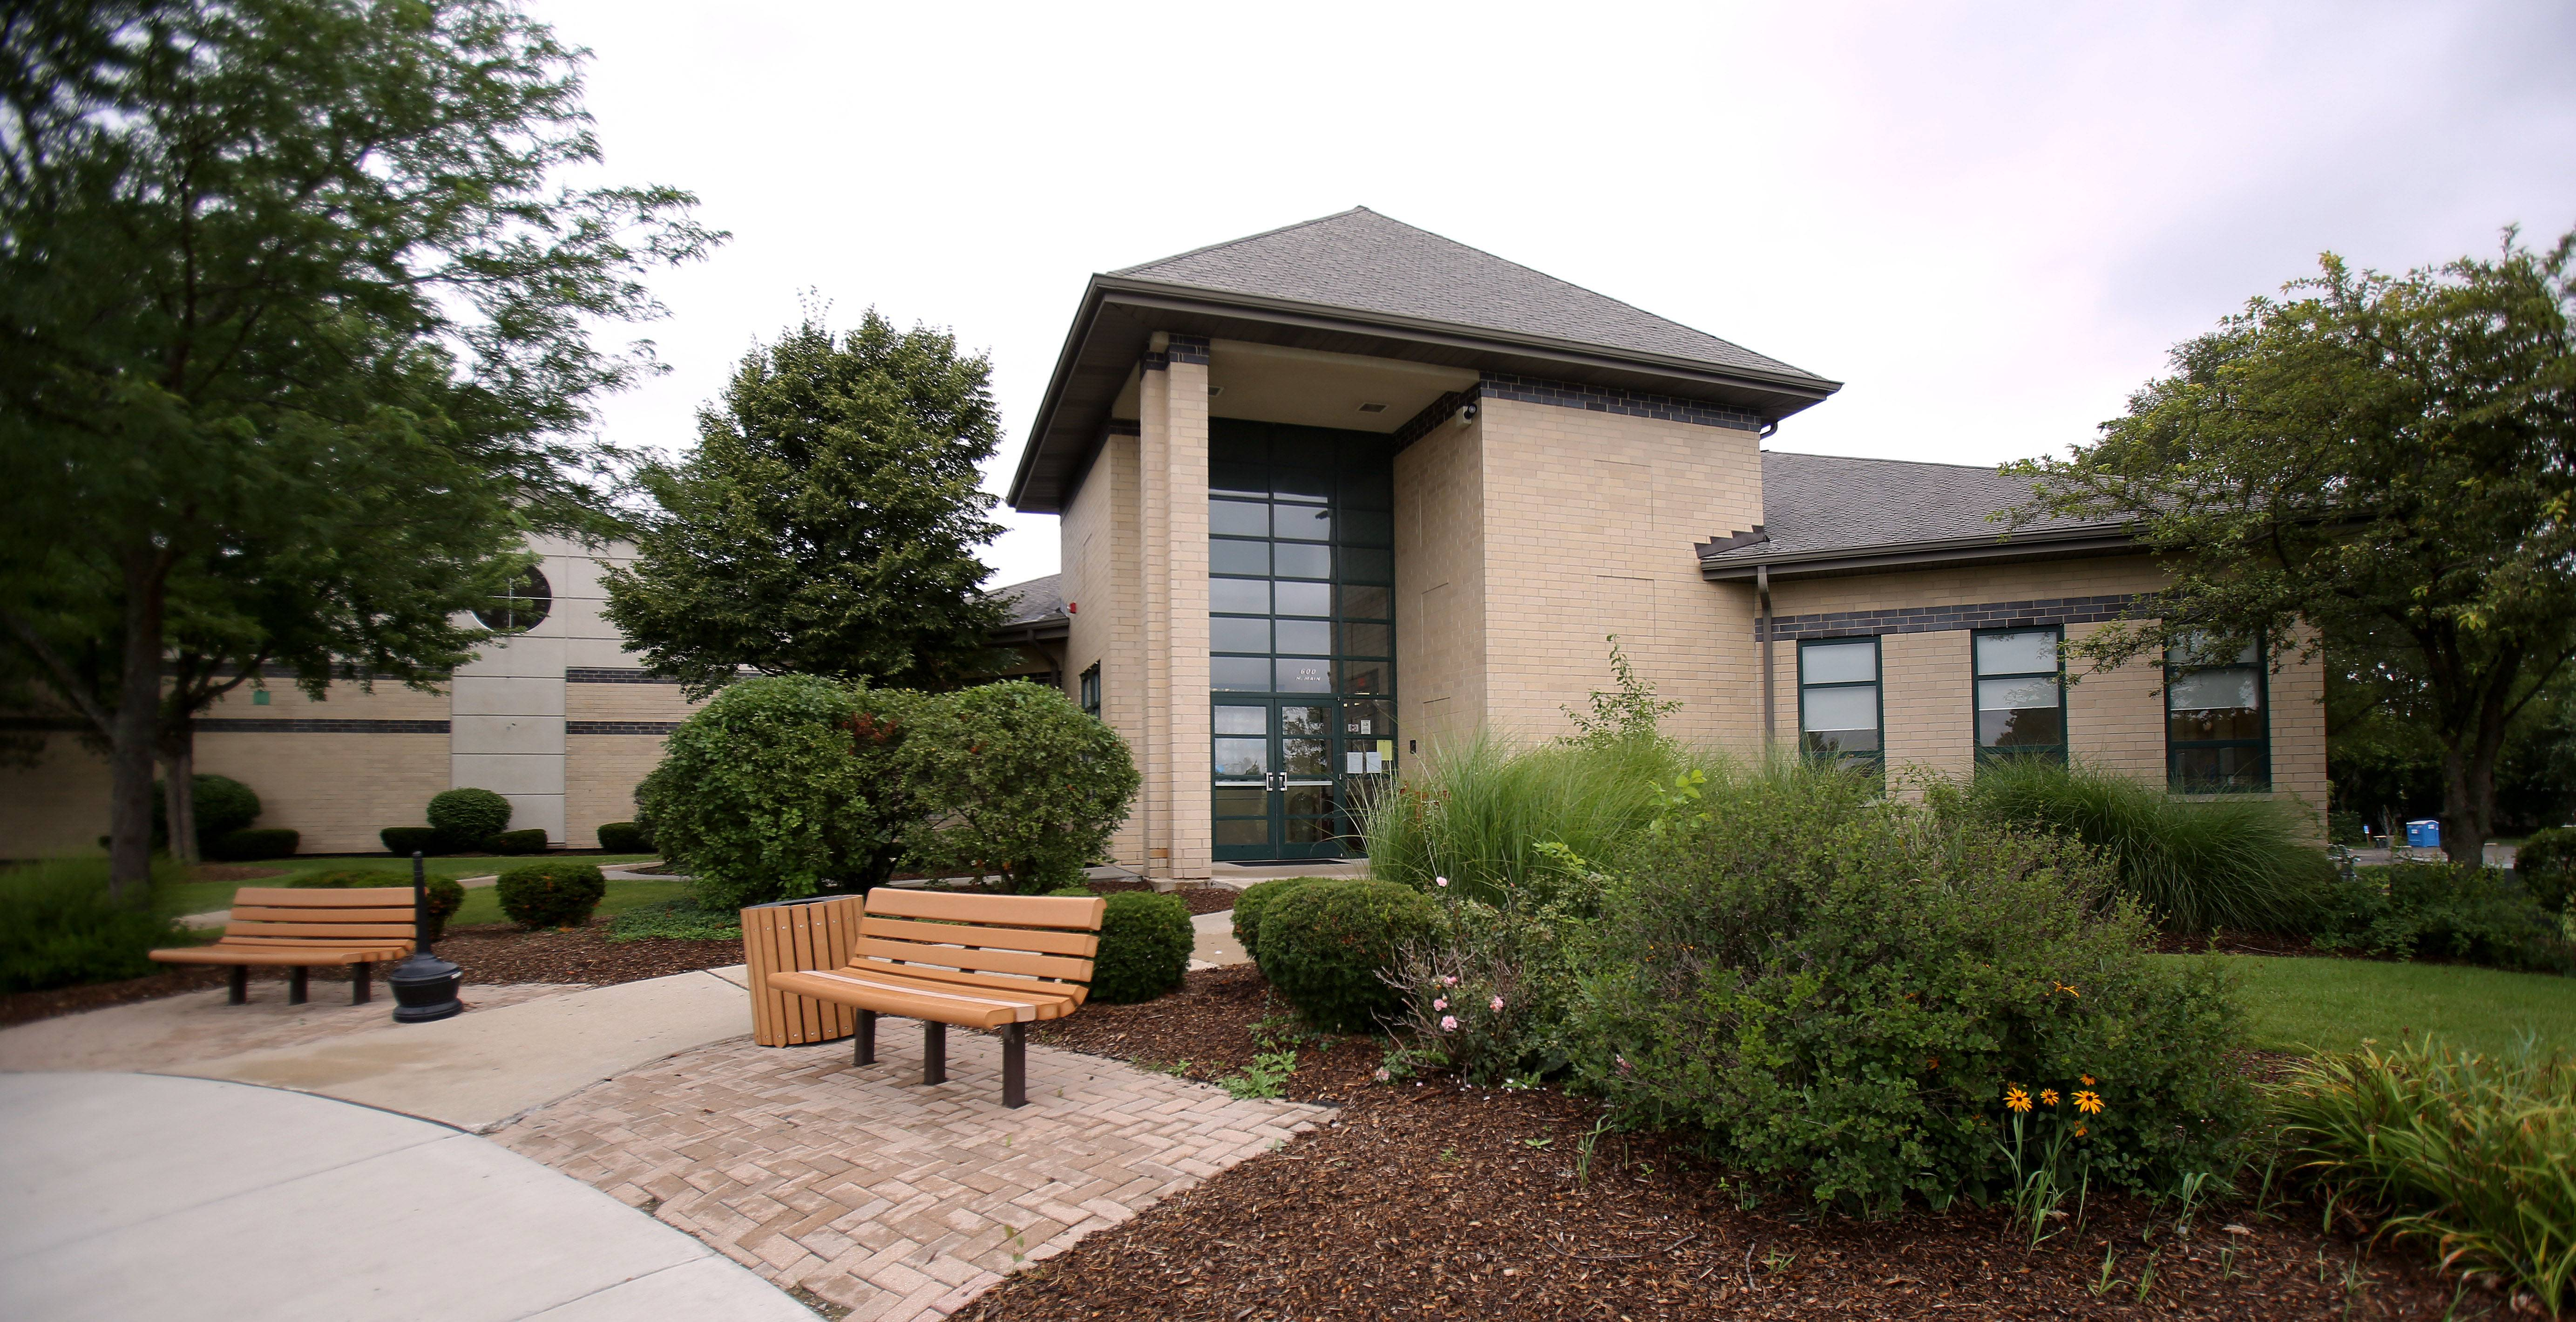 Community center plan headed to Wauconda voters